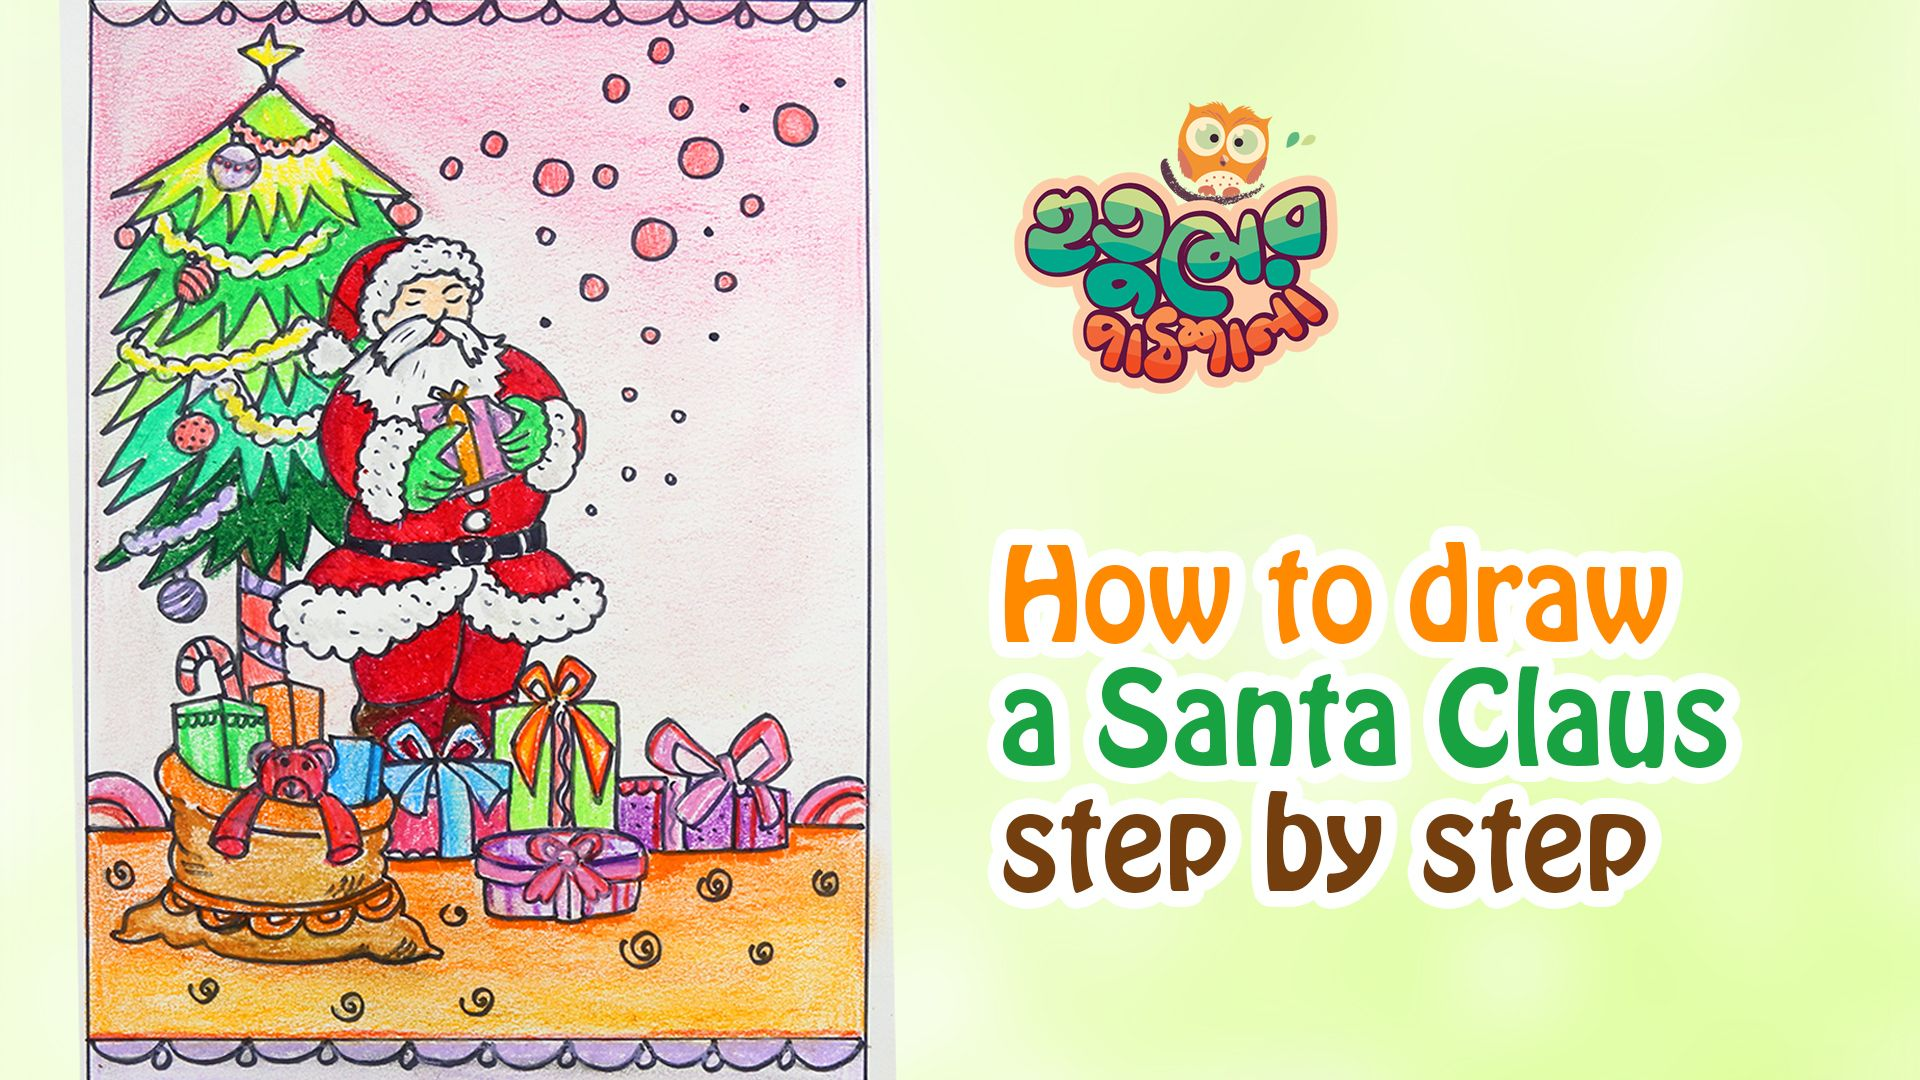 How To Draw Santa Claus With Christmas Tree Step By Step Coloring For Kids Art Tutorials For Kids How To Draw Santa Easy Christmas Drawings Easy Drawings